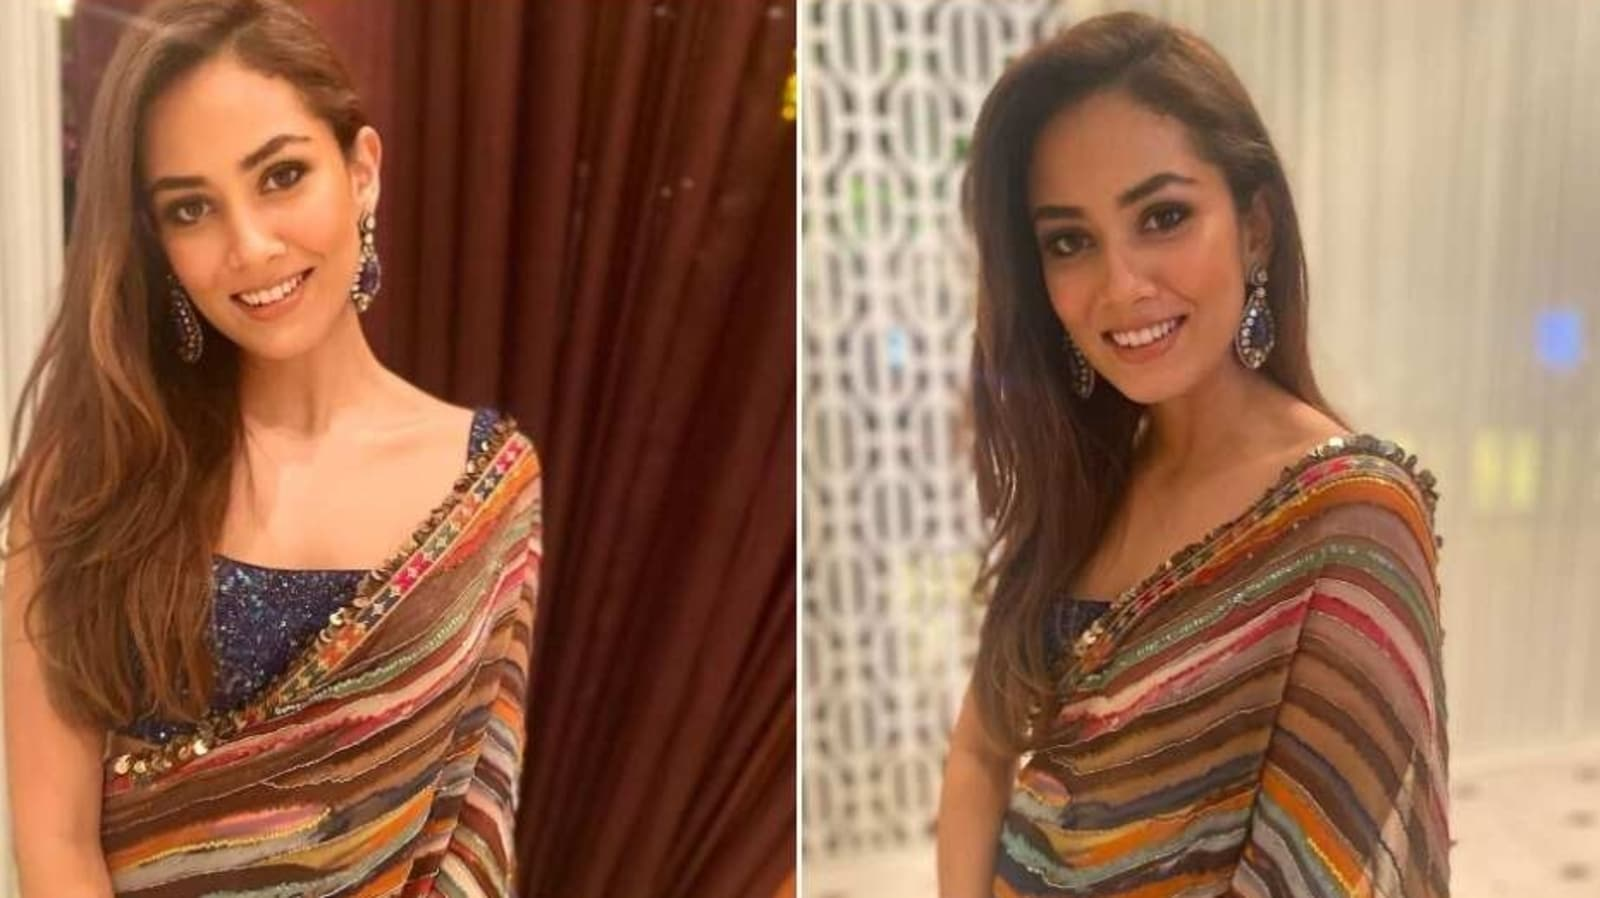 Mira Rajput's striped sequined saree is the modern twist to tradition we needed - Hindustan Times